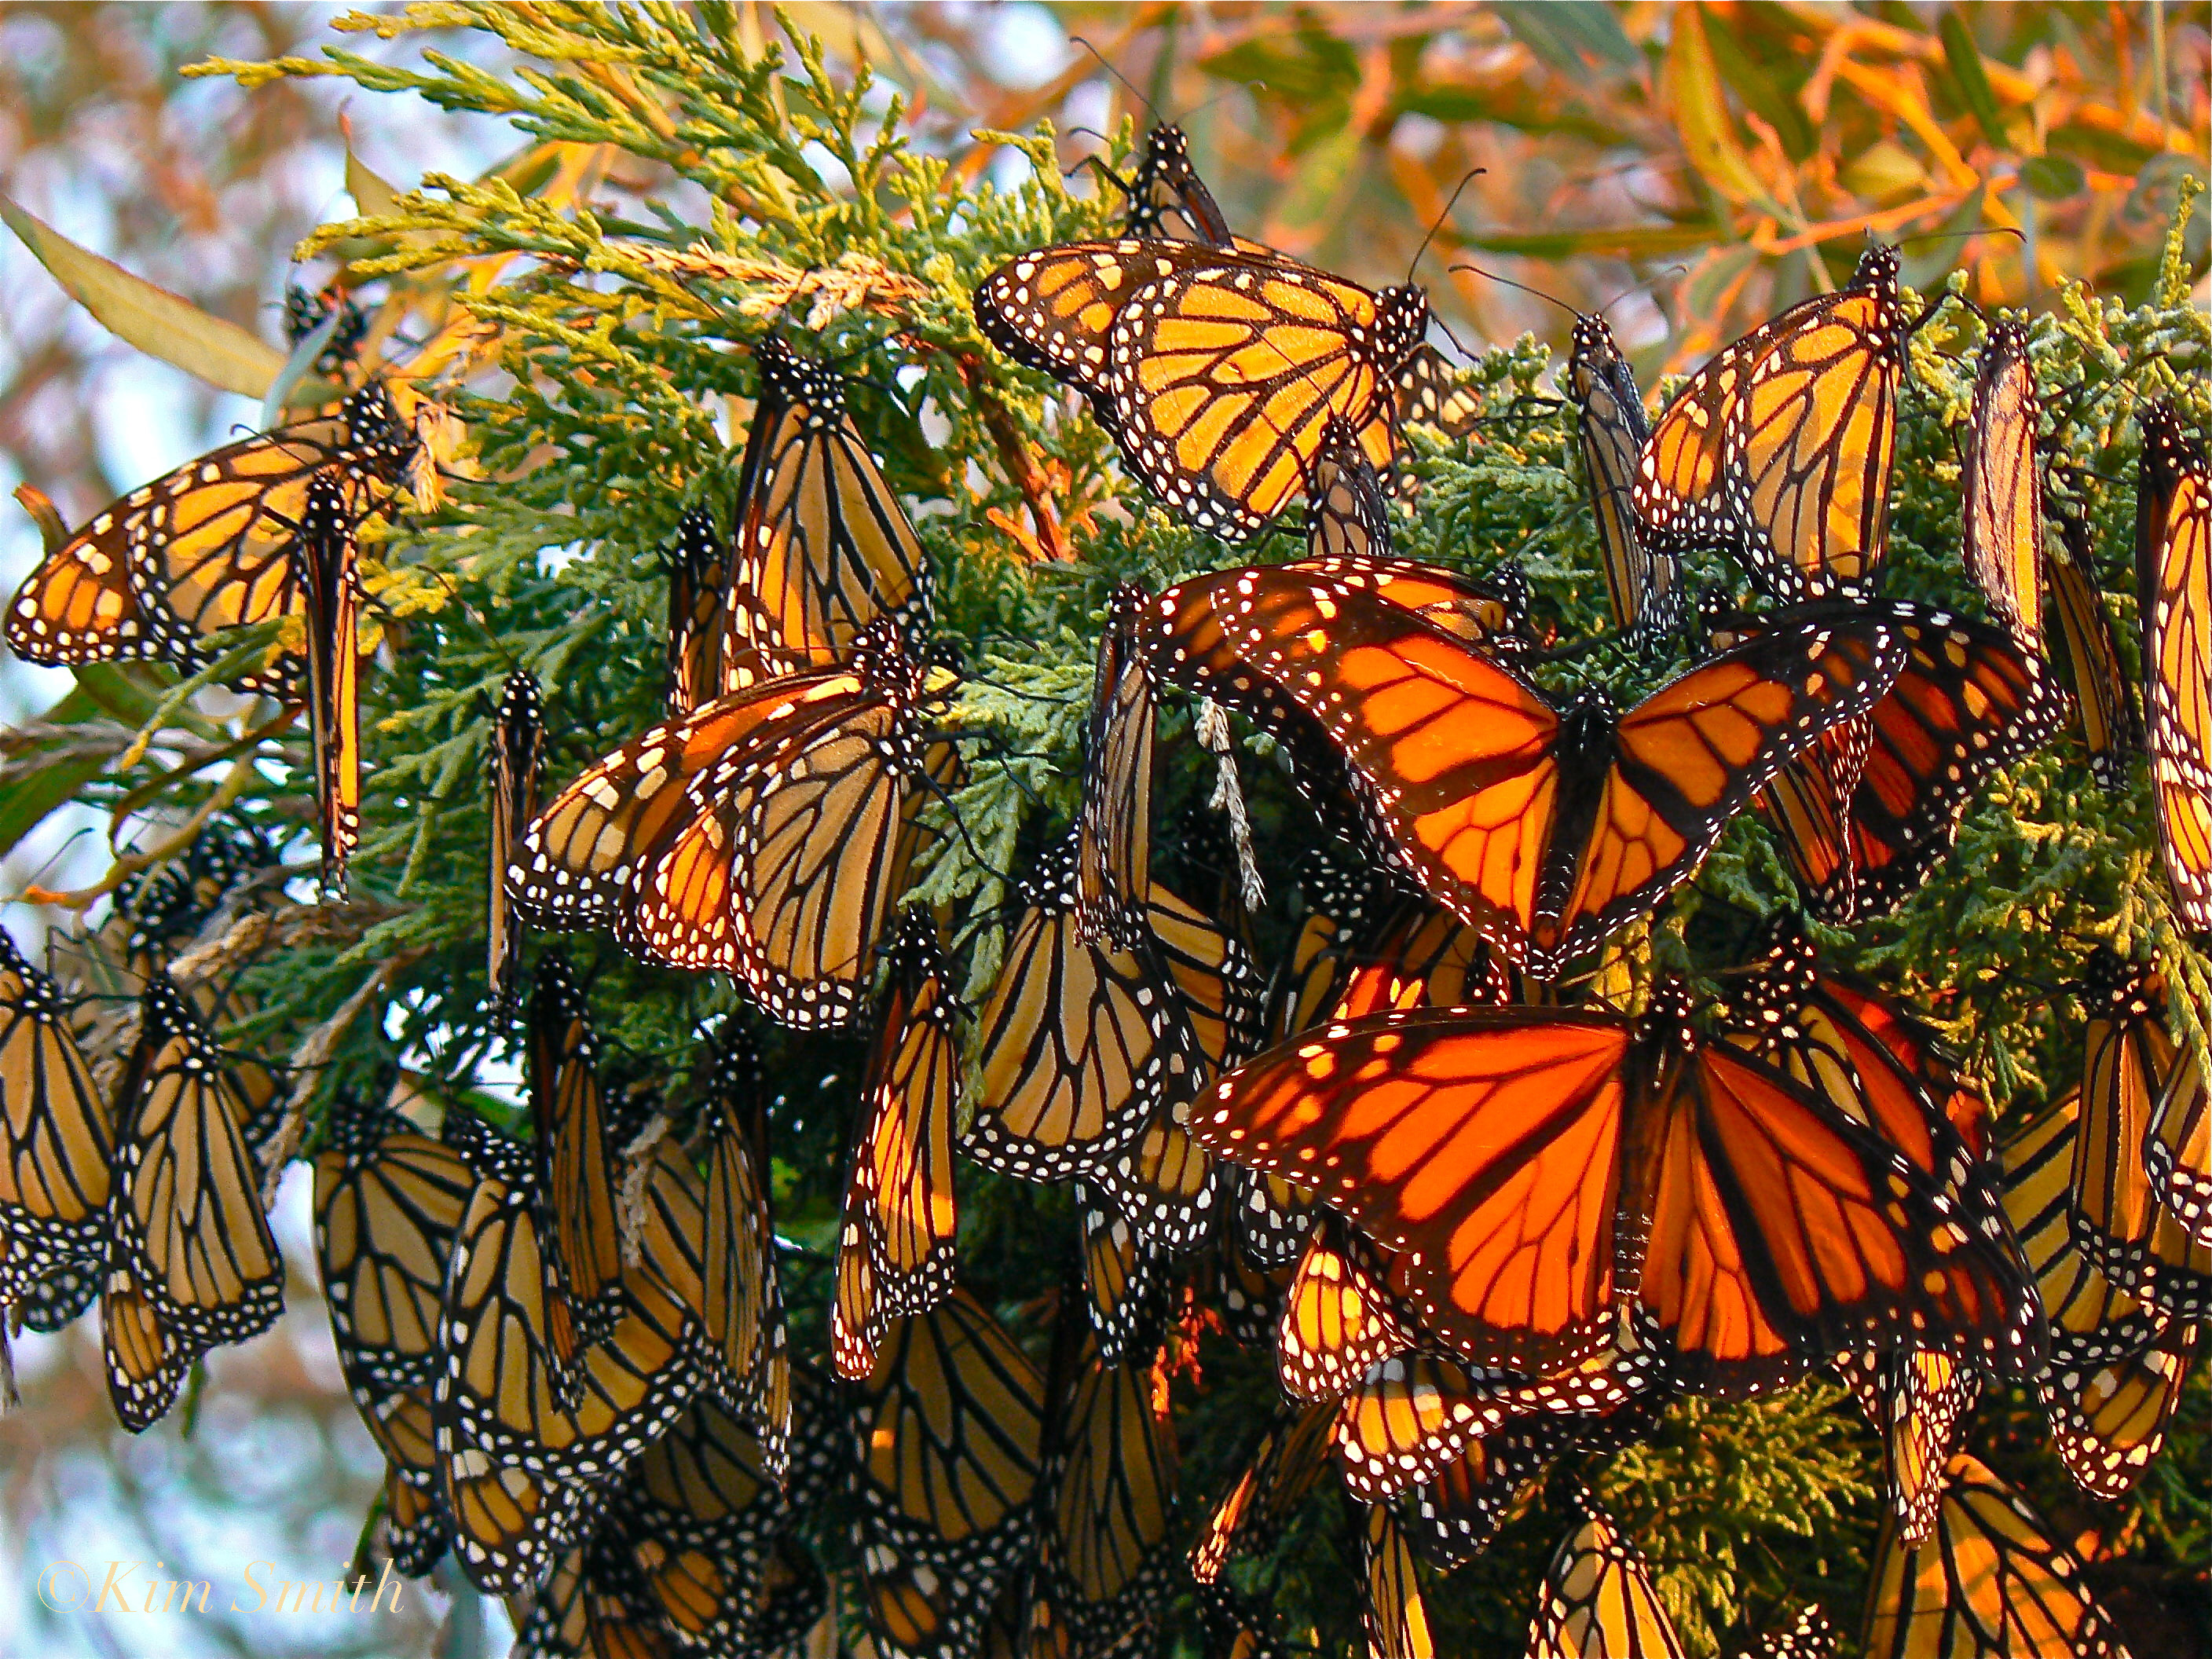 yellow butterflies - things to do in Mexico City